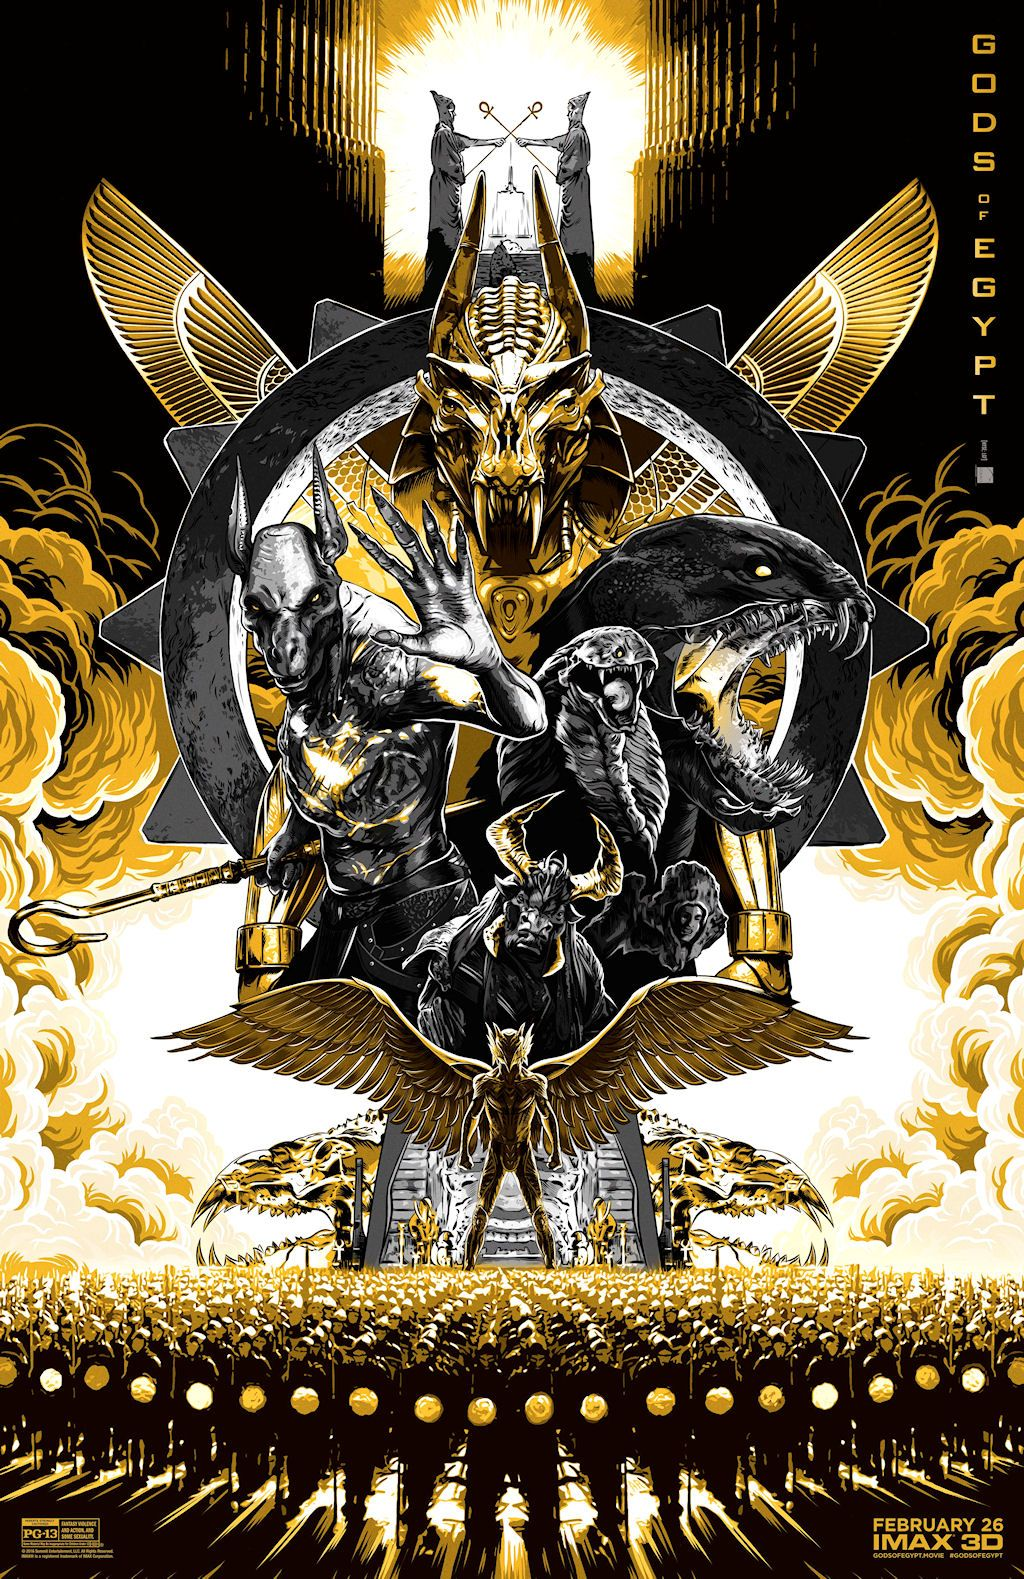 gods of egypt full movie download hd hindi dubbed